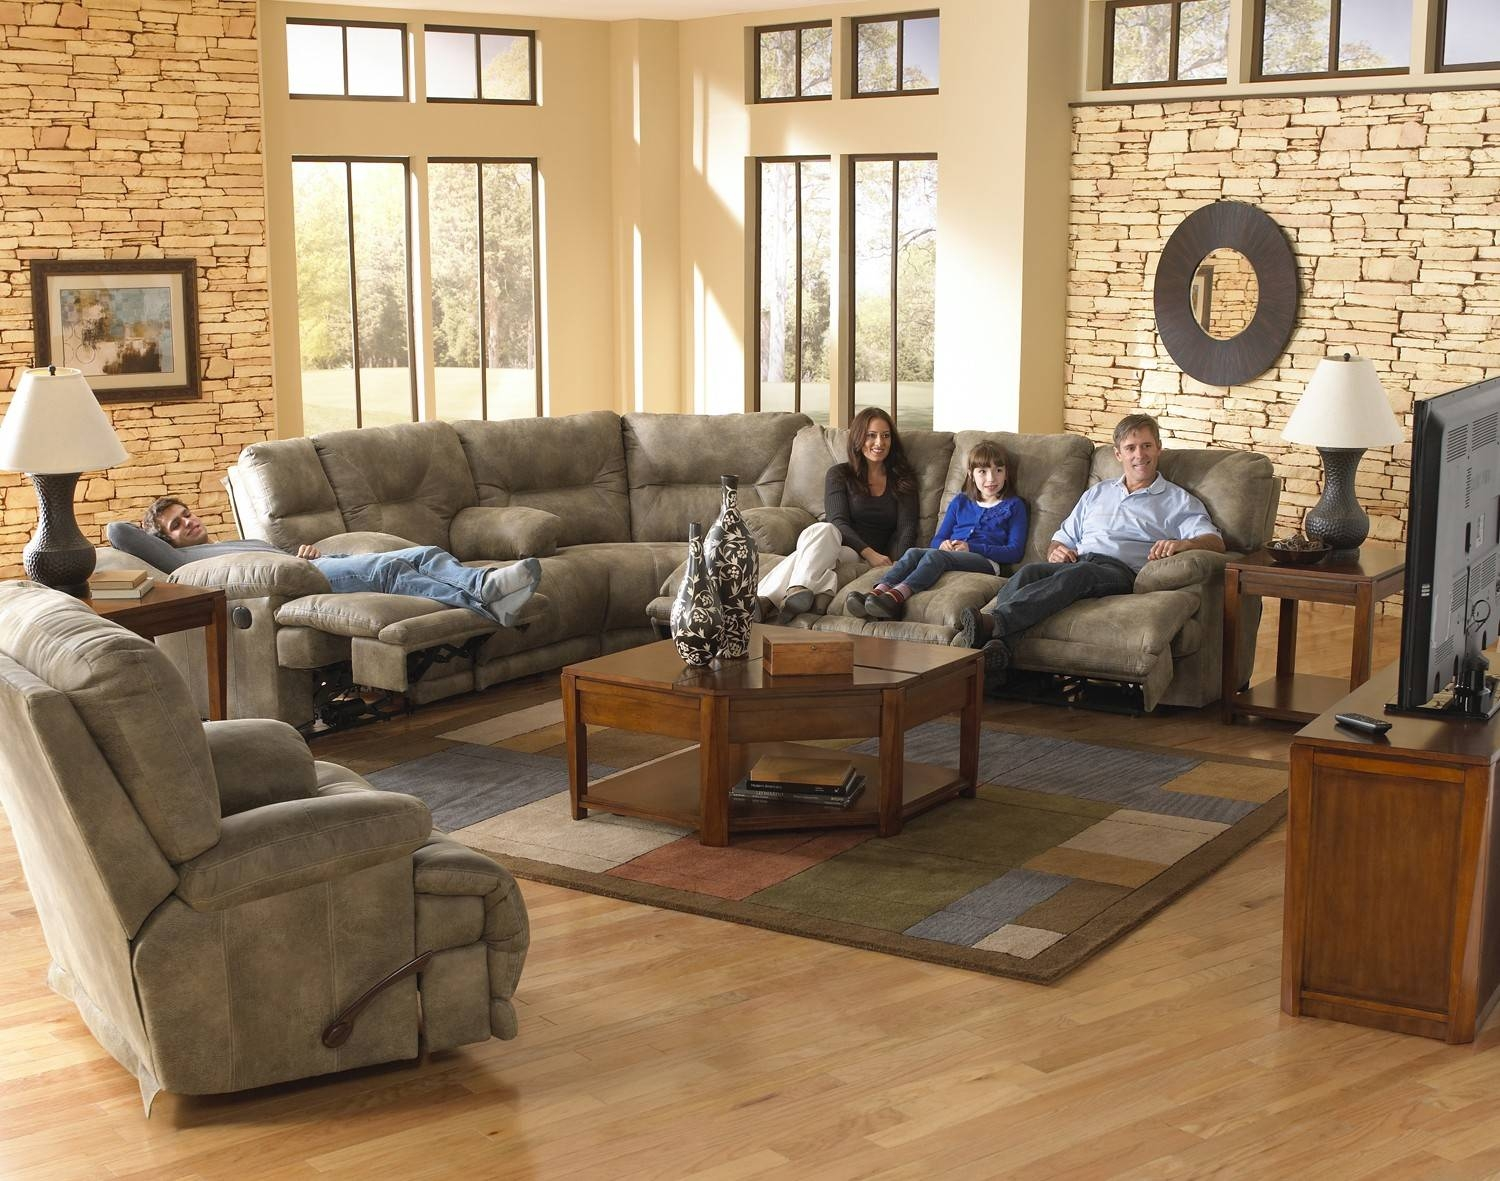 Catnapper Voyager Lay Flat 3-Pc Sectional W/ Triple Recline Sofa with regard to Catnapper Reclining Sofas (Image 8 of 15)